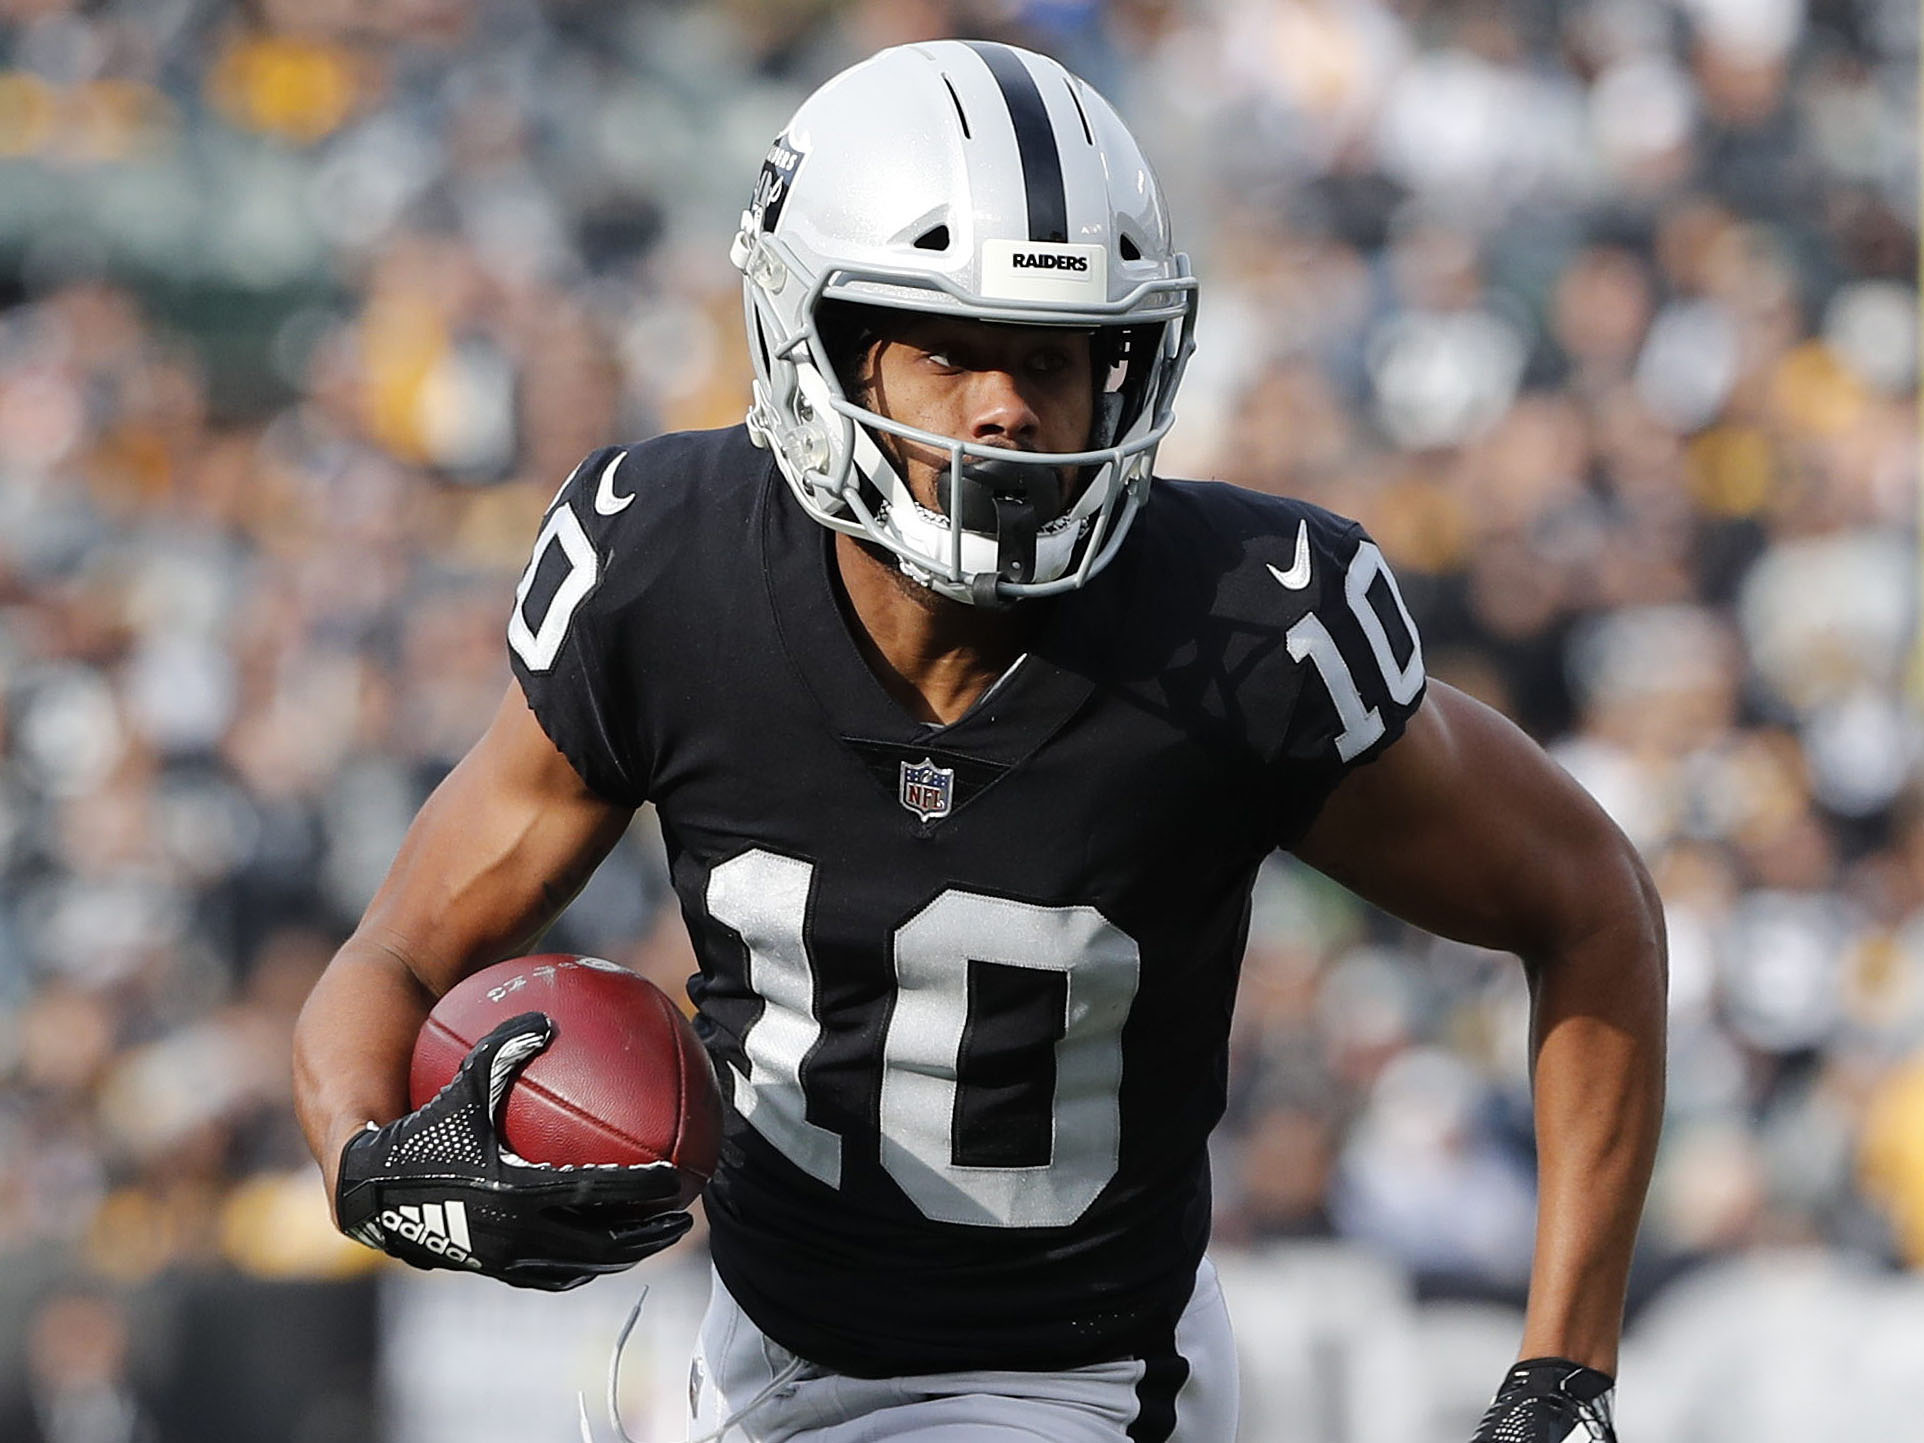 pretty nice 21be6 b47a2 Roundup: Raiders release Seth Roberts after 4 seasons - NFL.com